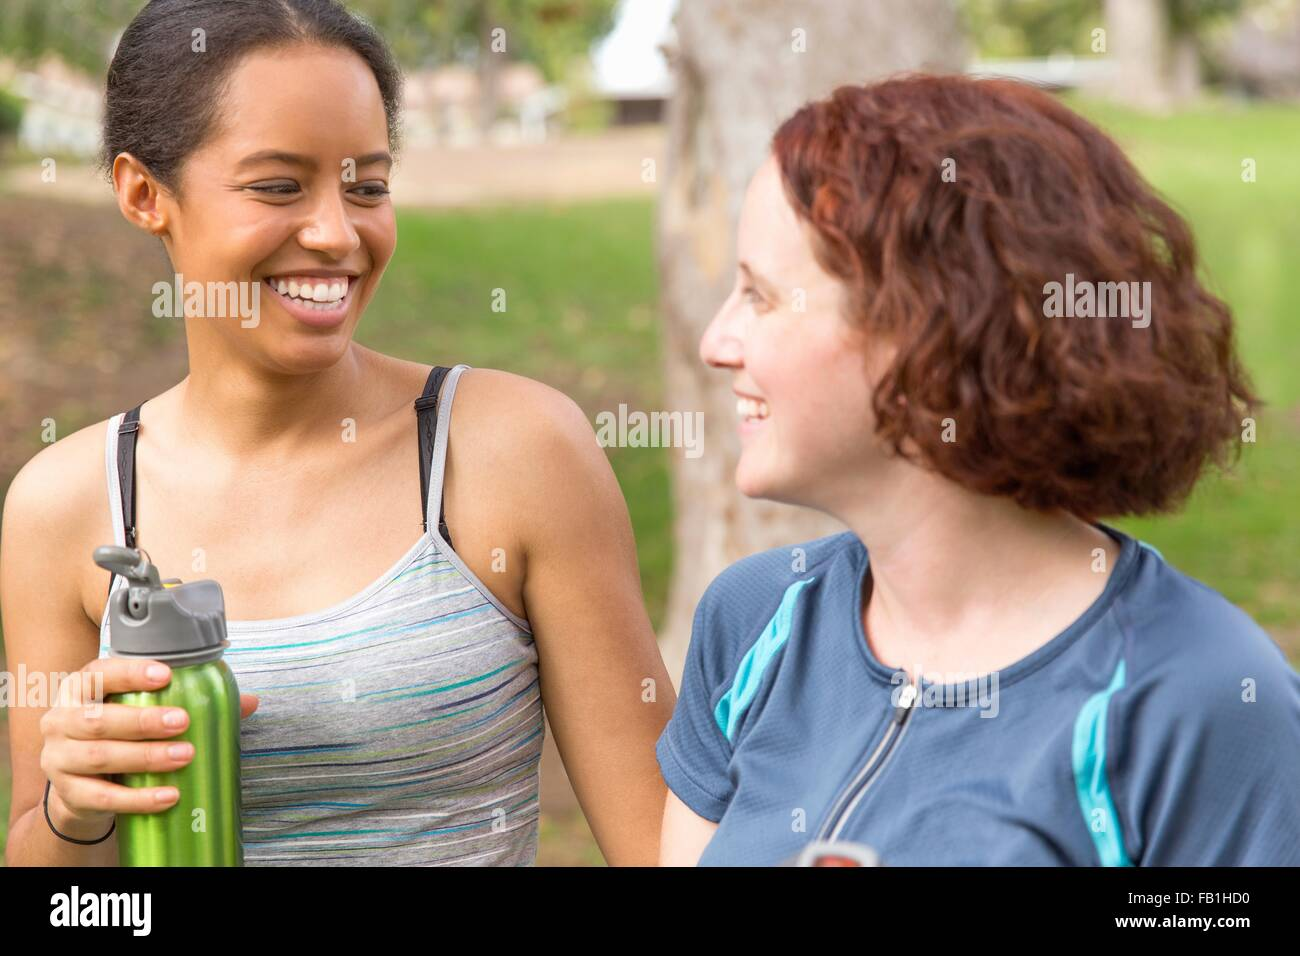 Head and shoulders of young women carrying water bottles face to face smiling - Stock Image